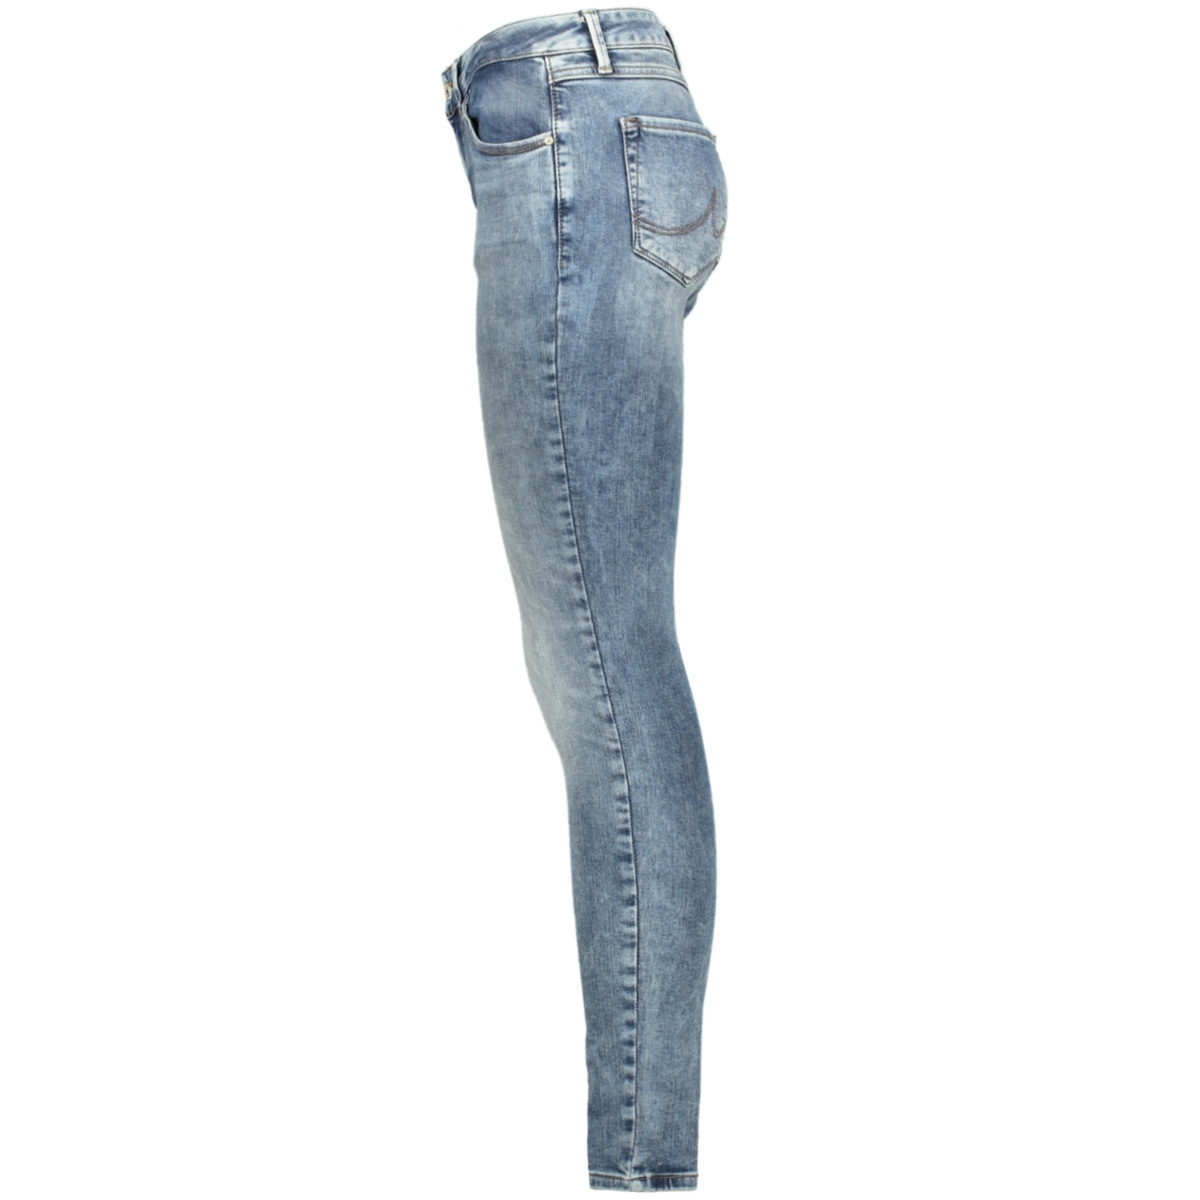 dasy 51169 ltb jeans 52161 field wash